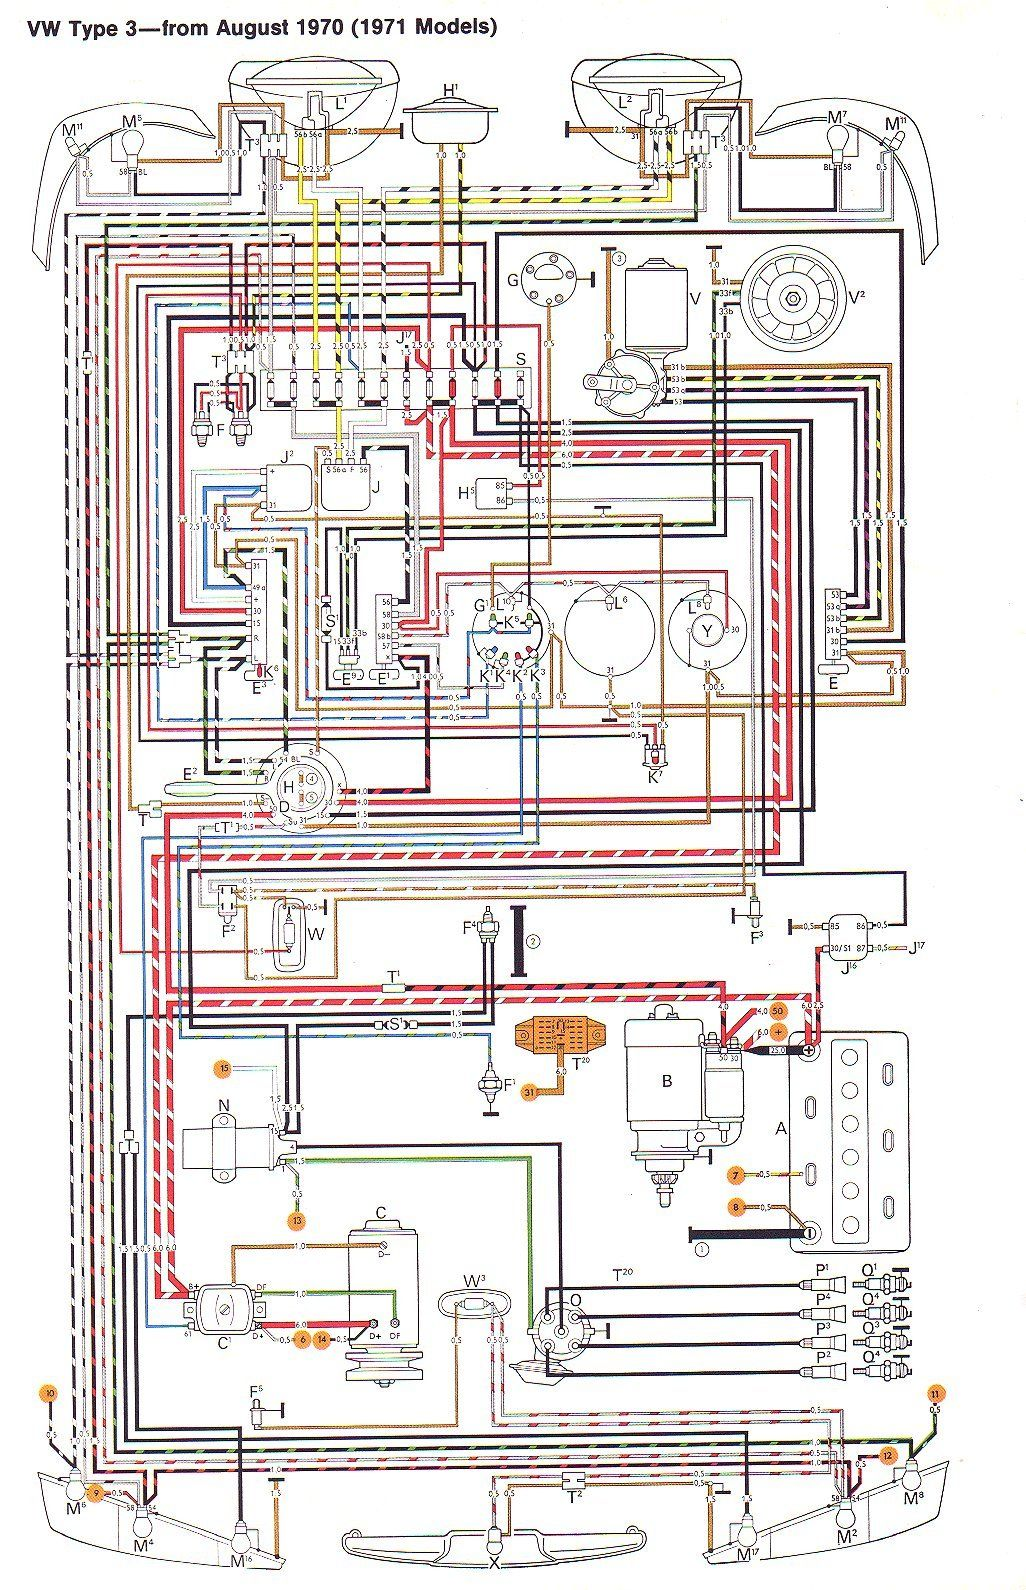 e0db58370f79a63d02d45f00cf63f44a 71 vw t3 wiring diagram car projects pinterest volkswagen 1971 vw bus wiring diagram at crackthecode.co